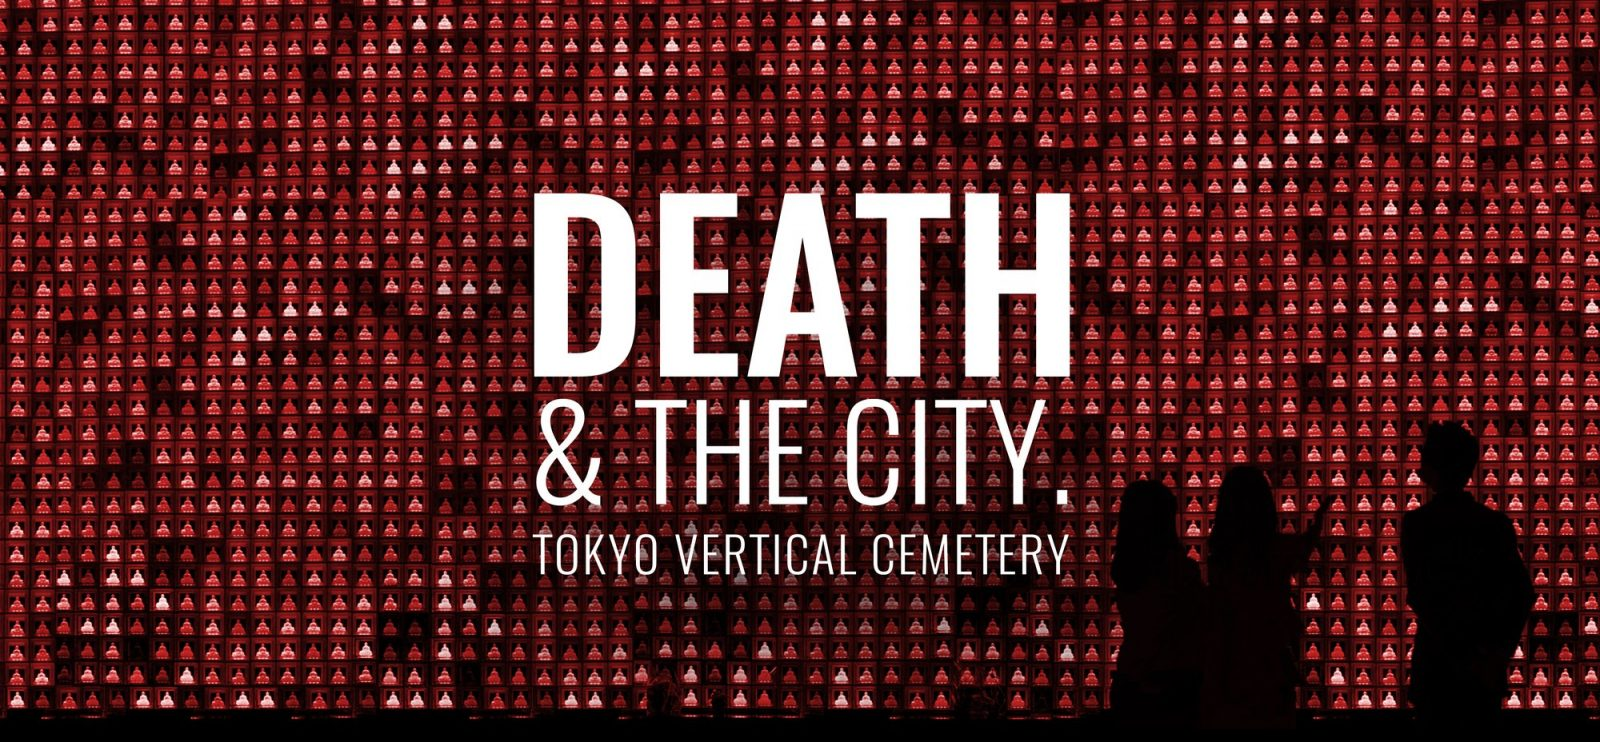 Tokyo vertical cemetery ideas design competition